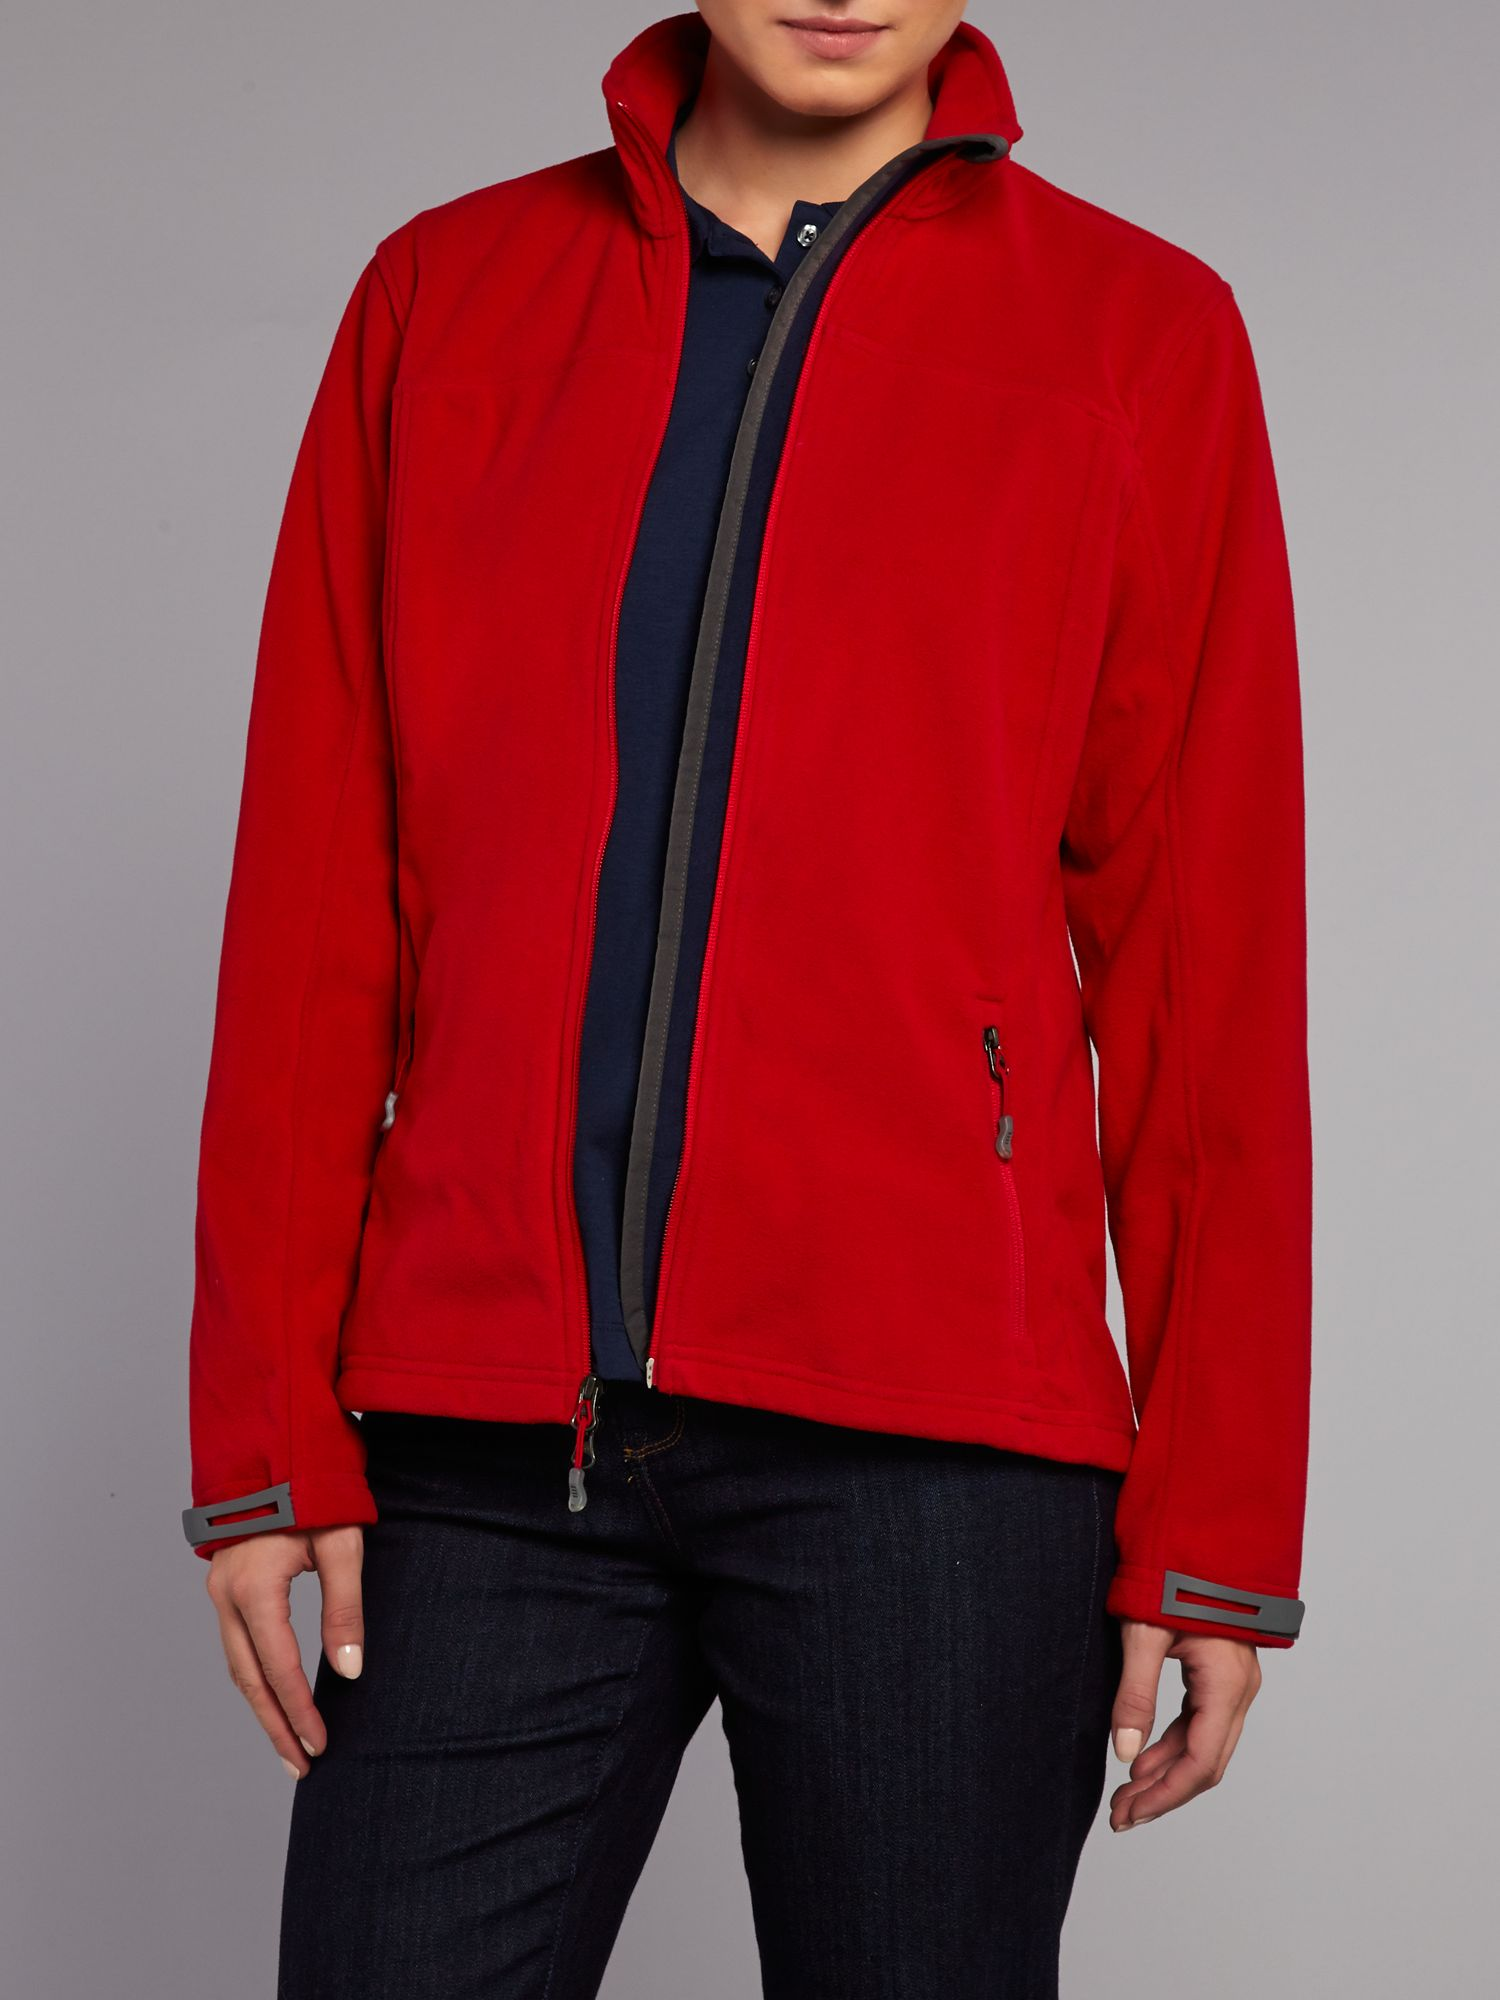 Regular polartec jacket